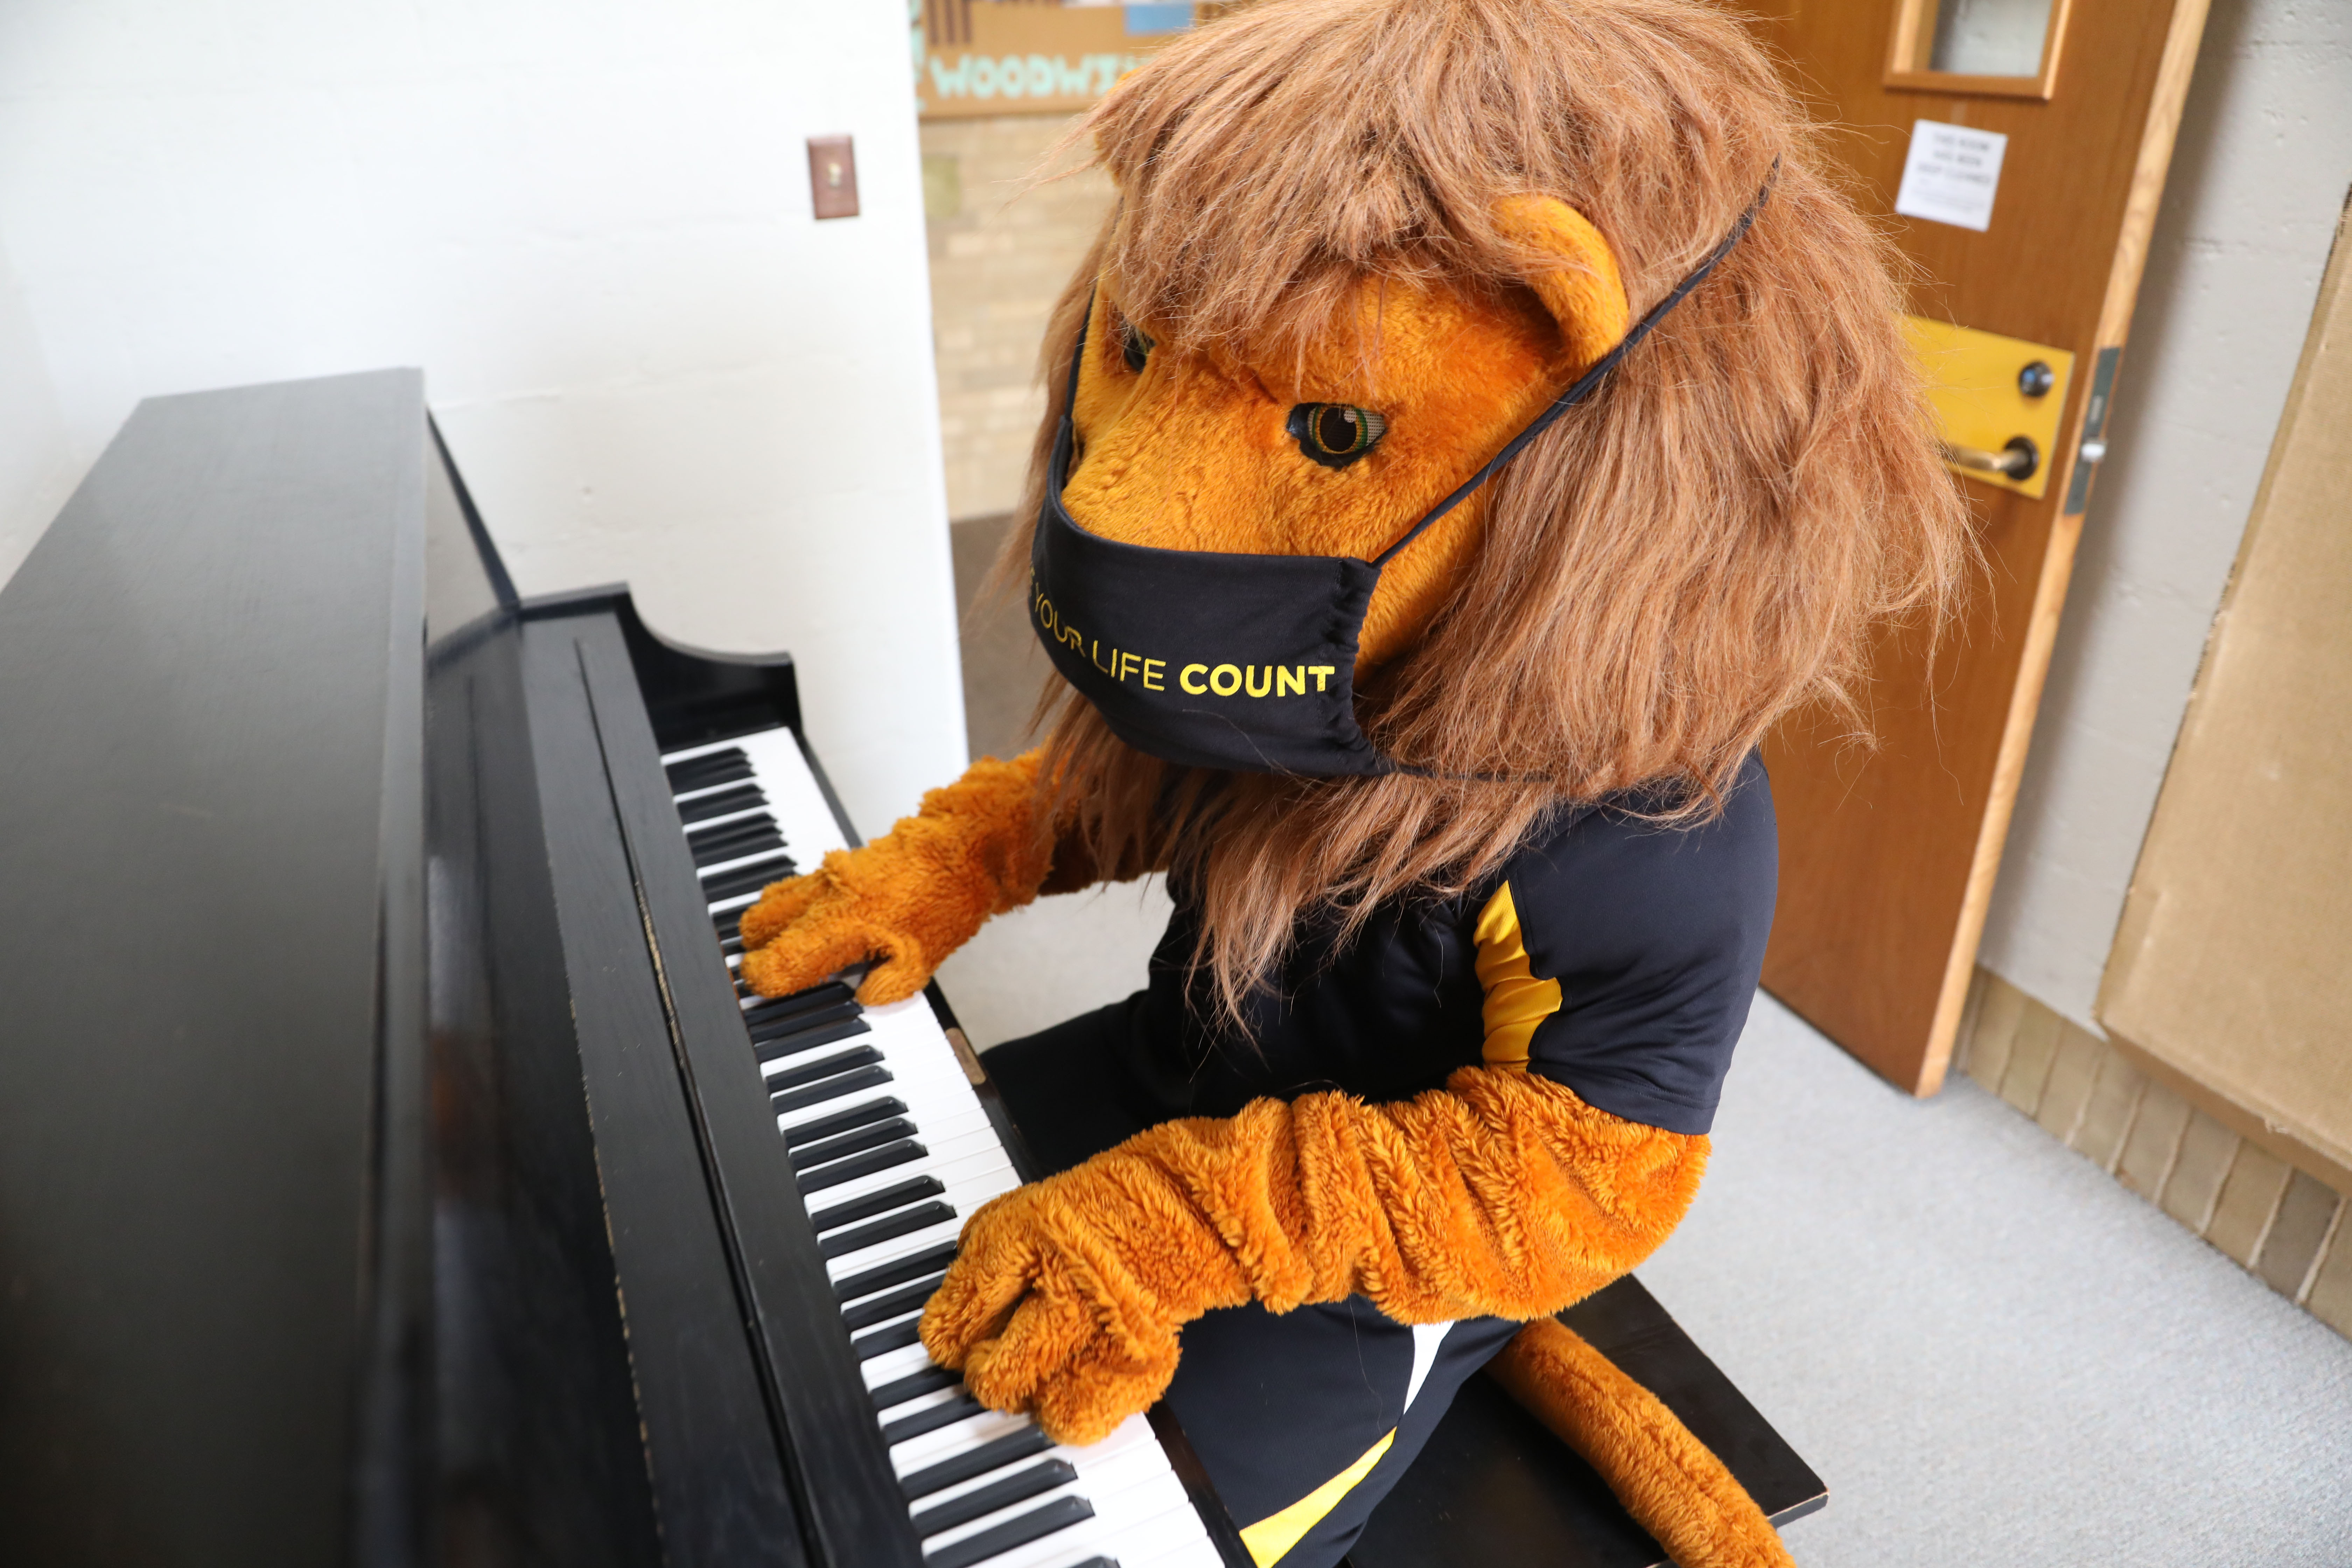 Gus playing the piano with a mask